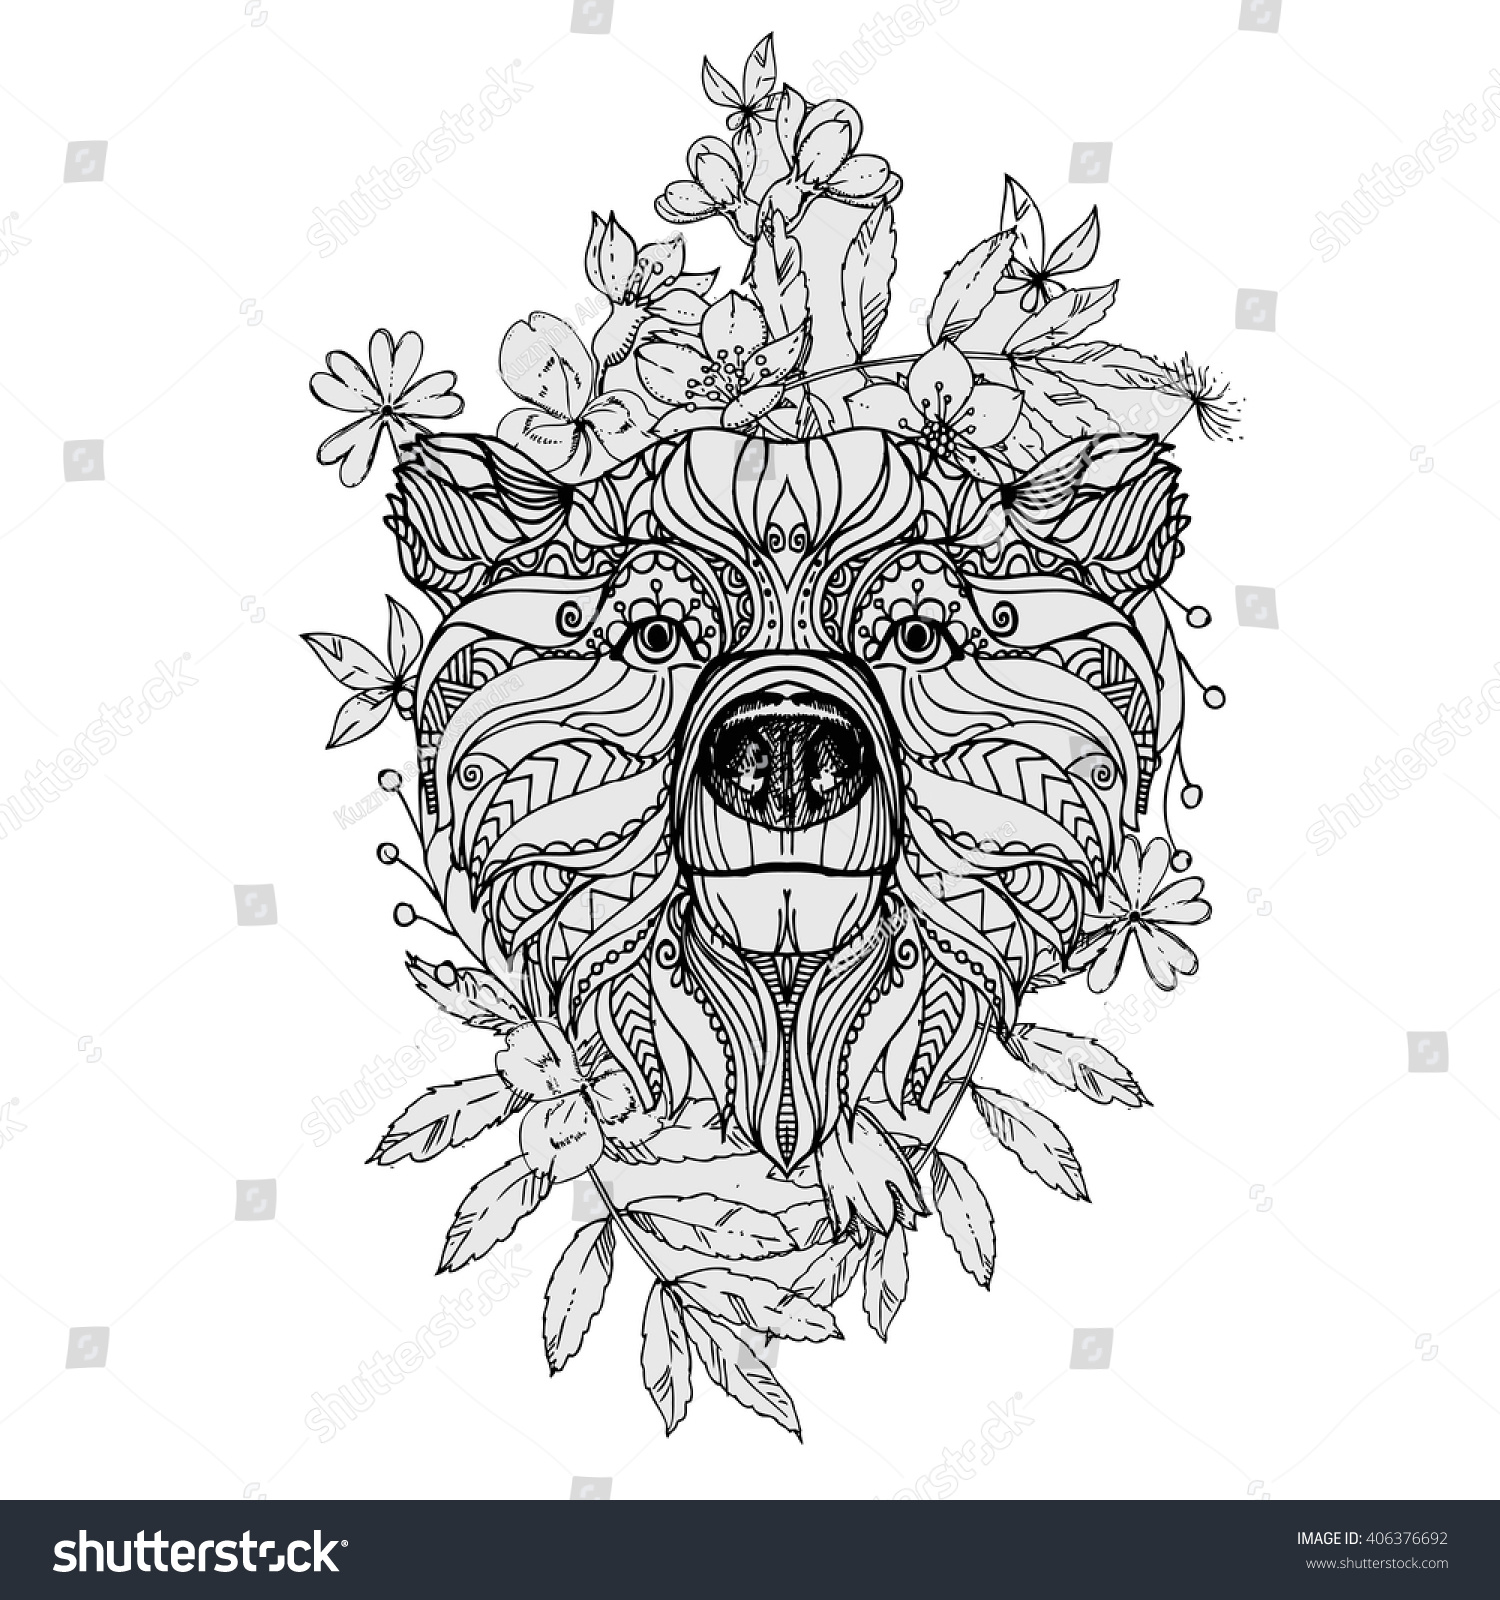 hand drawn ink doodle bear flowers stock vector 406376692